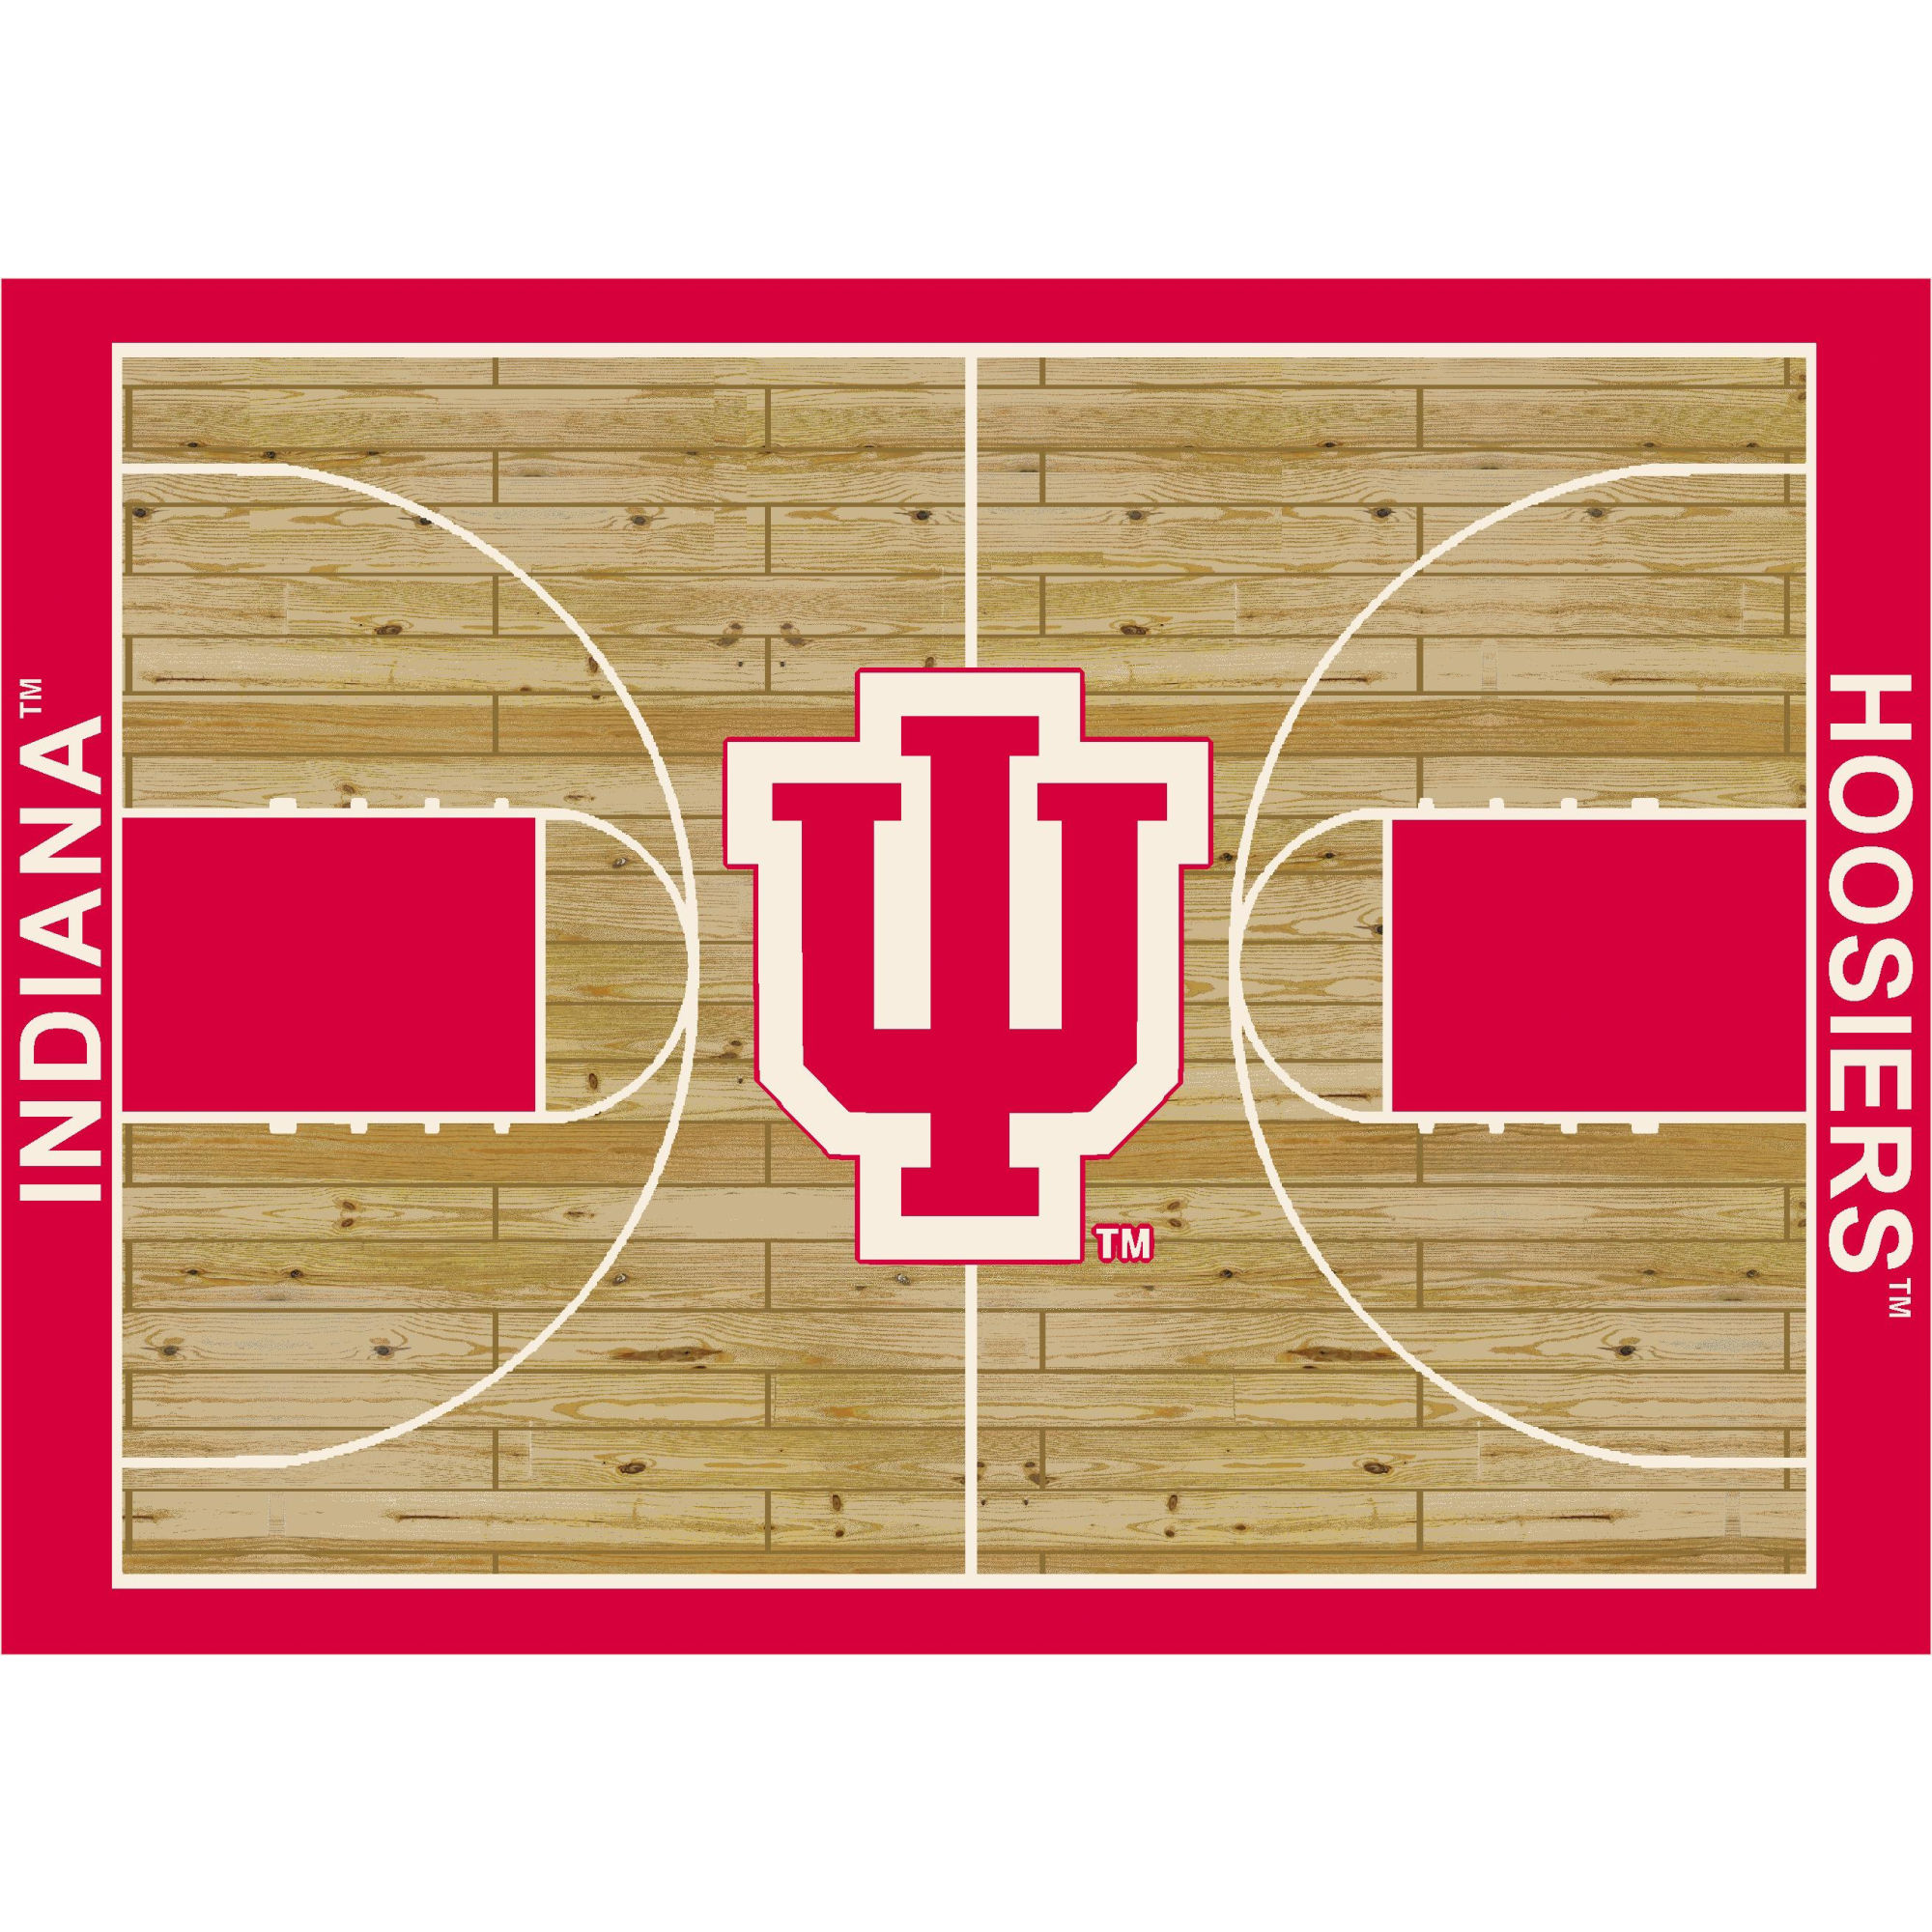 Indiana Hoosiers Basketball Wallpaper Images TheCelebrityPix 2000x2000